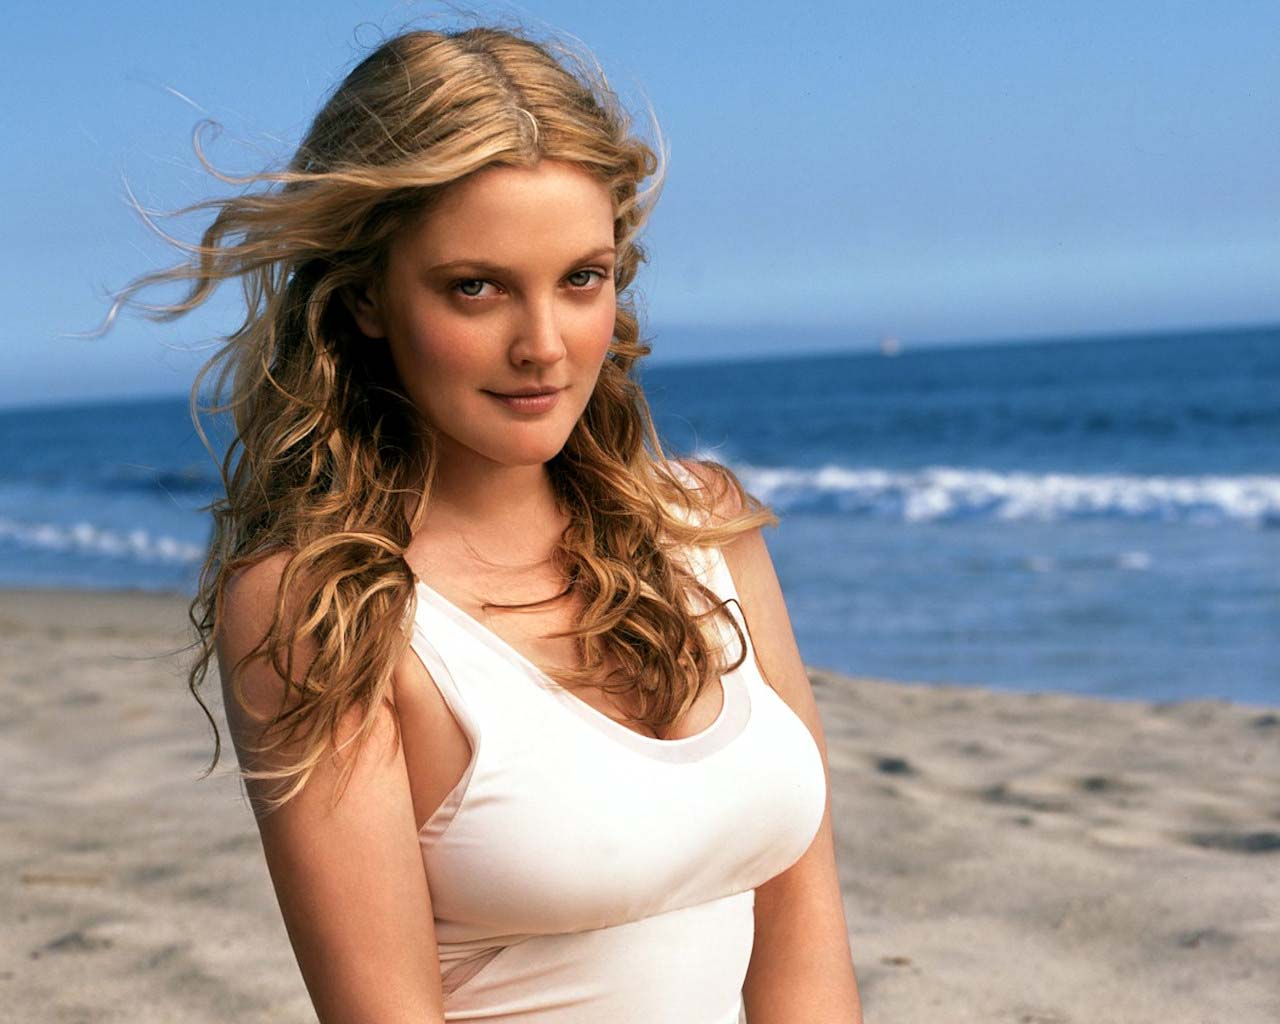 http://4.bp.blogspot.com/-nR6ExlR8Wac/TXUuAWQPZxI/AAAAAAAANco/eMlYyIKQ48I/s1600/Drew-Barrymore-Hot-Hollywood-Actress-Wallpapers-8.jpg